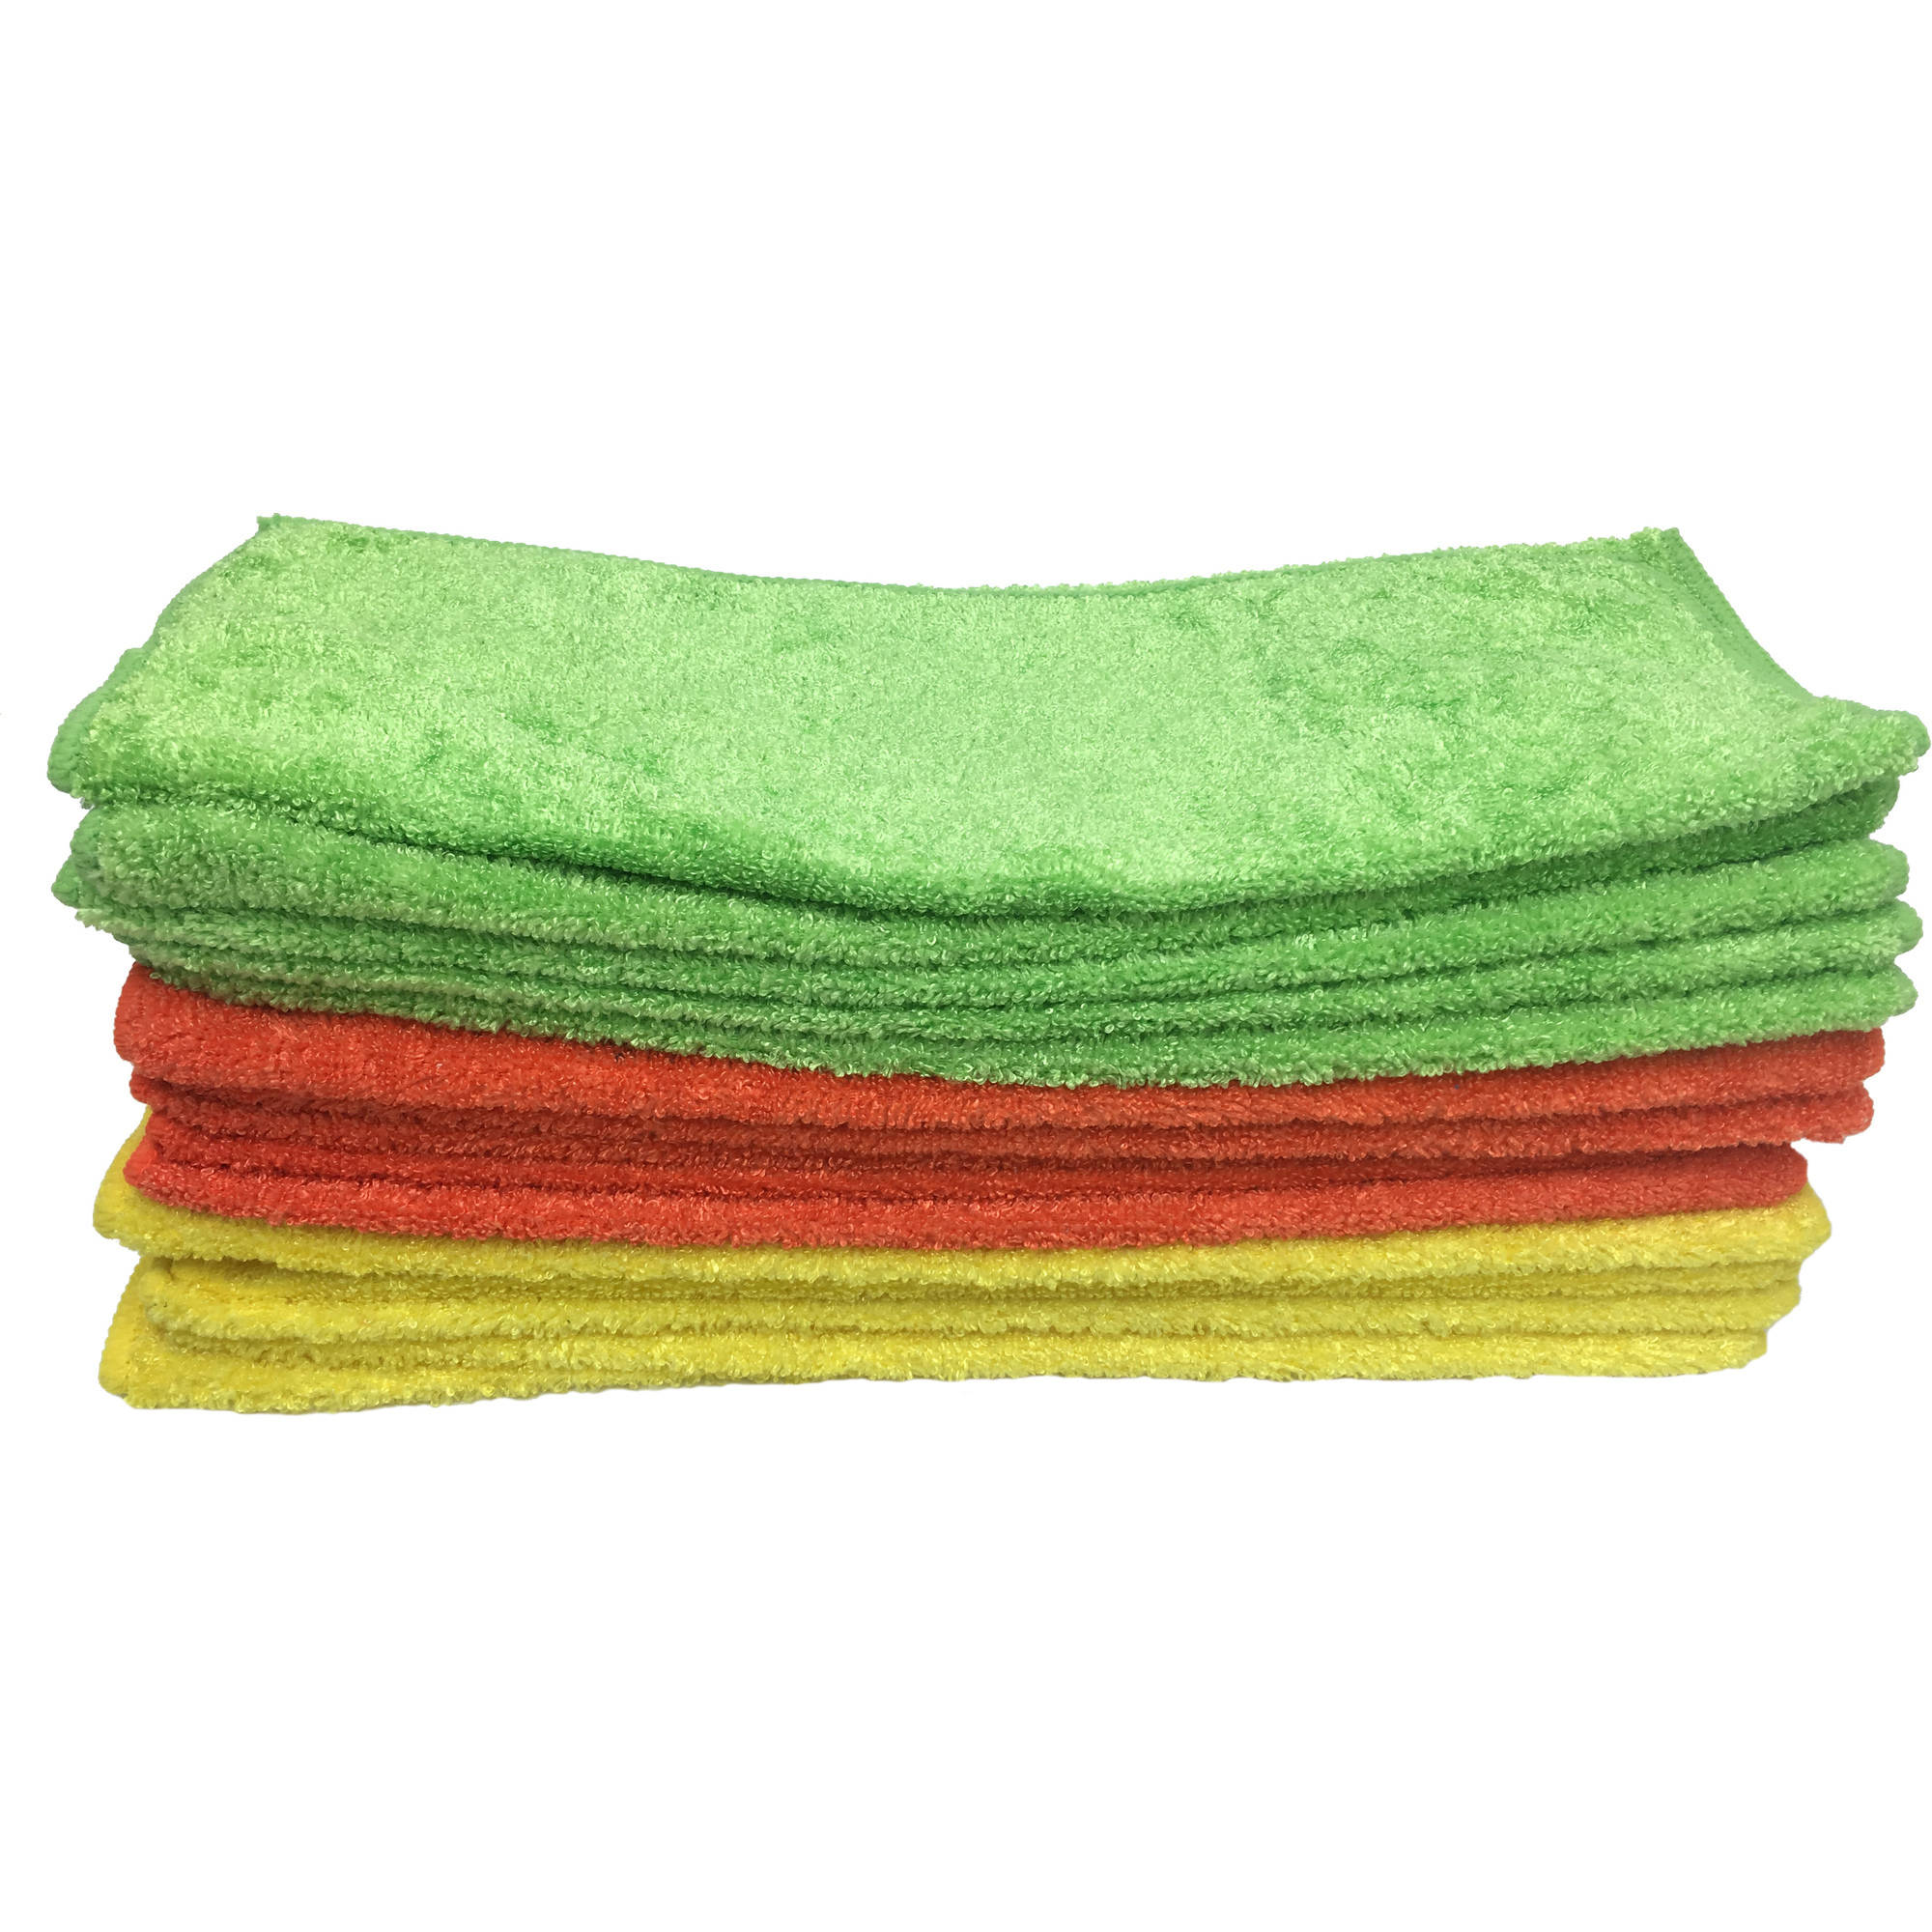 Viking Final Shine Microfiber Cleaning Towel, 15-Pack